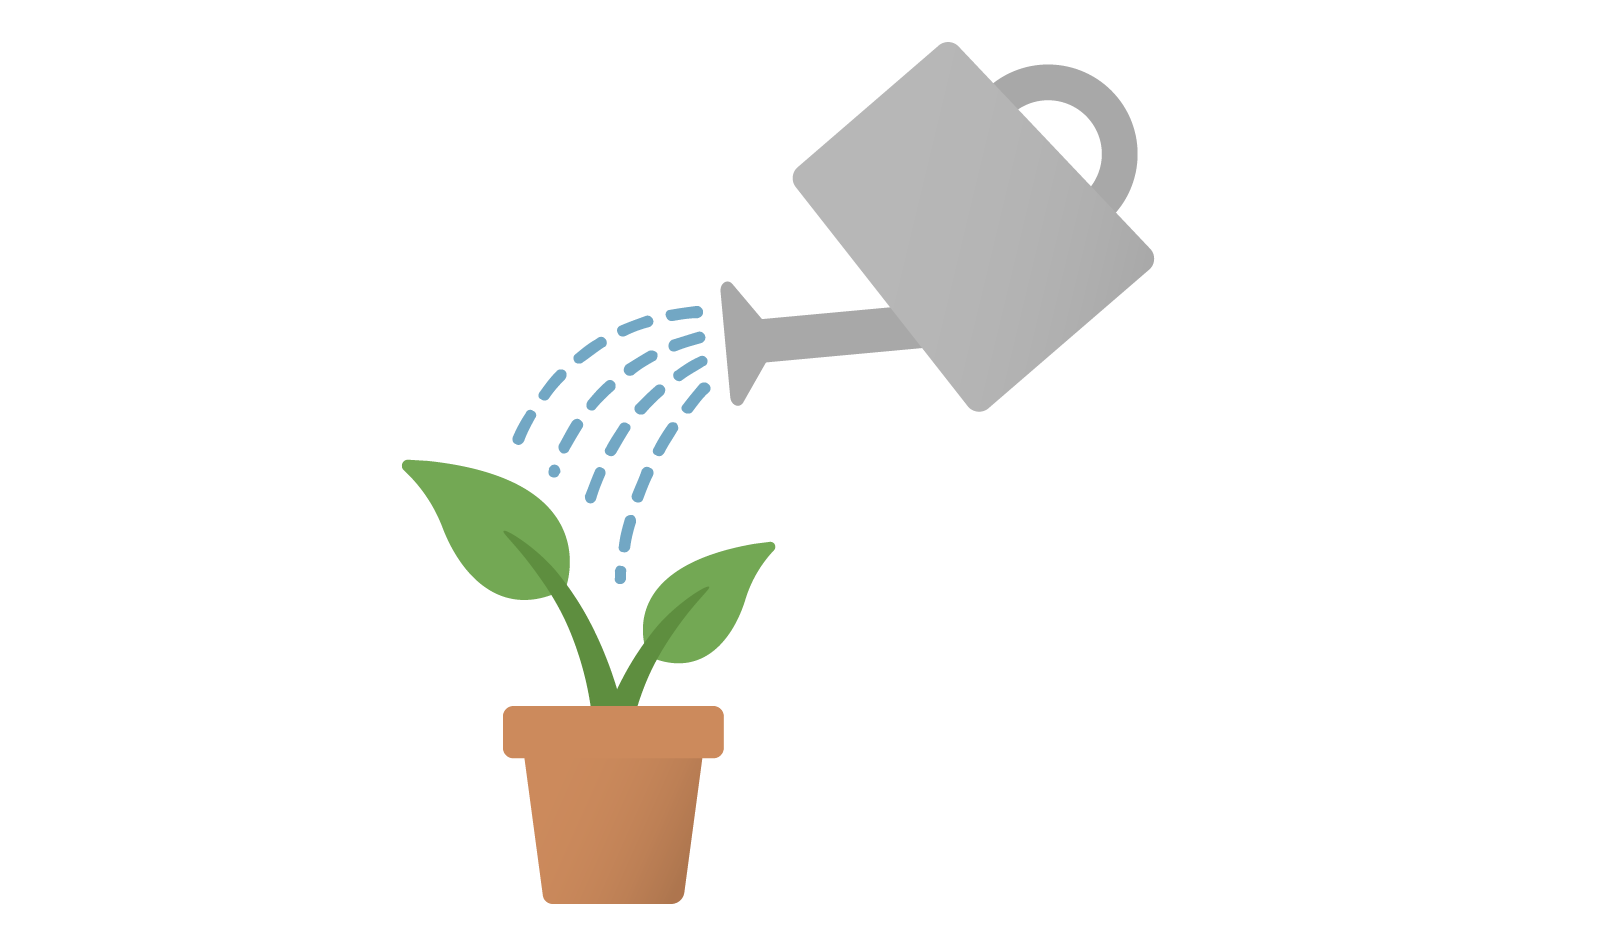 Illustration of a plant being watered and growing